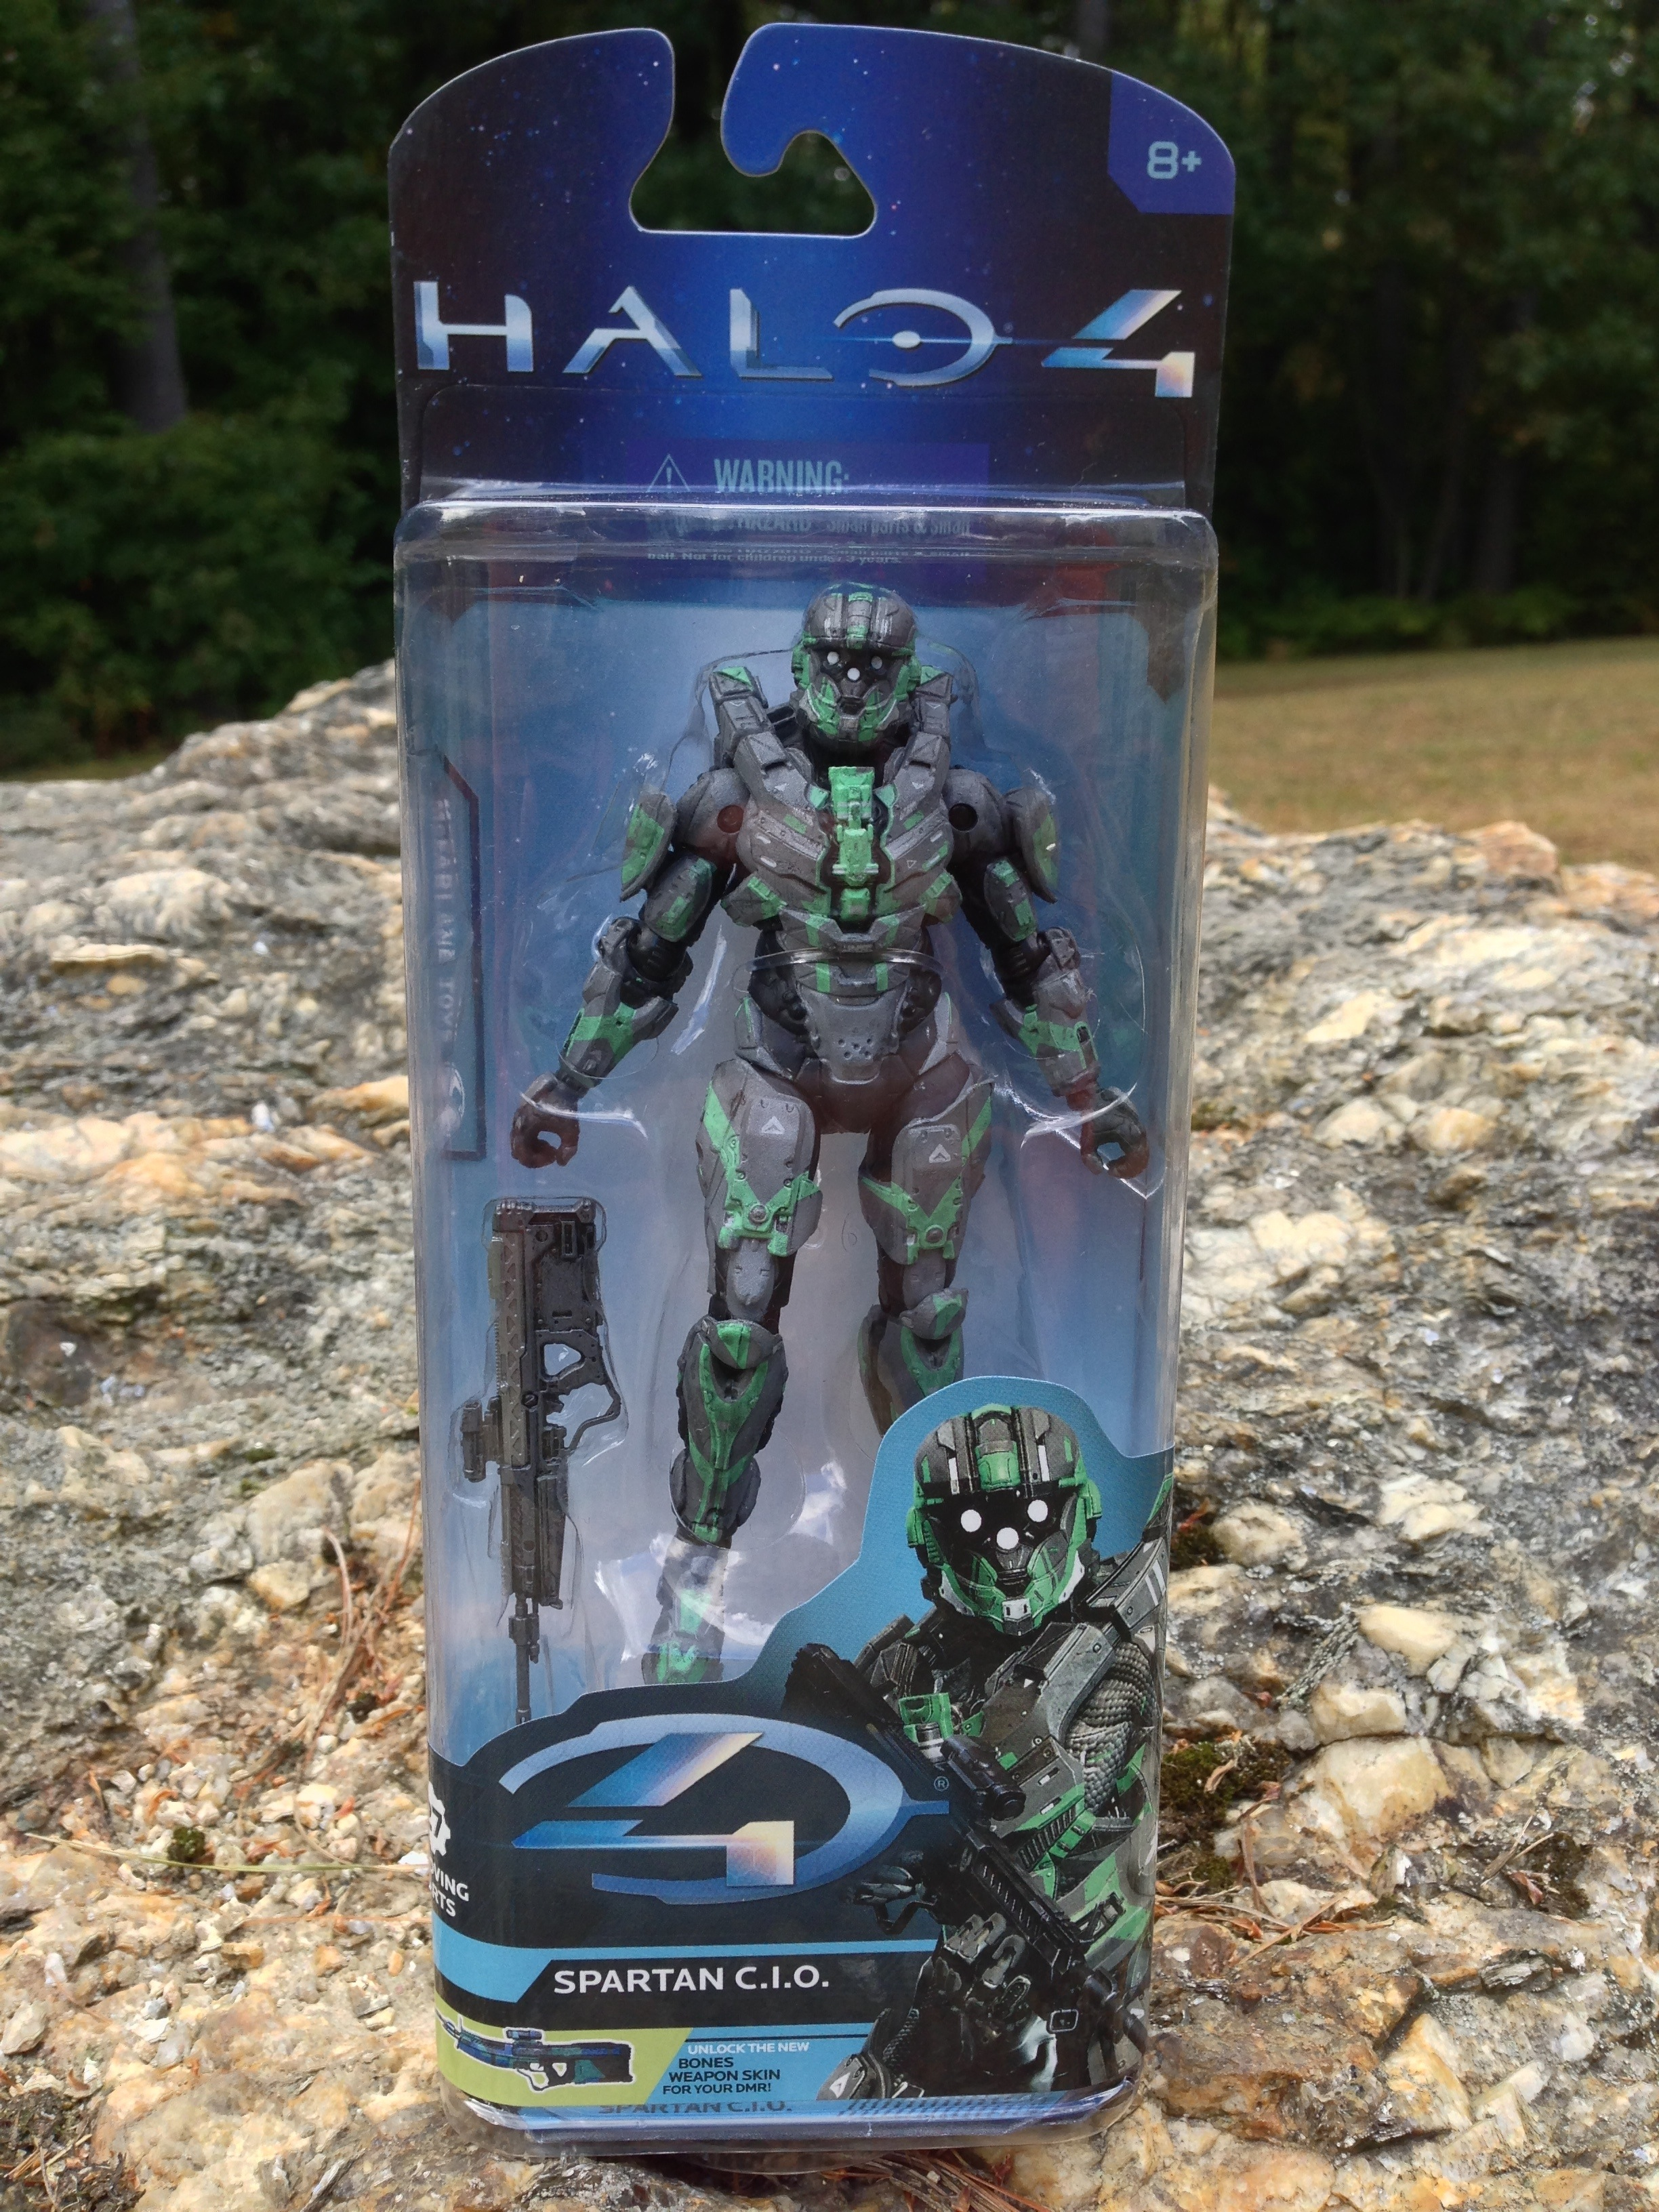 "Halo 4-Series 2-SPARTAN C.I.O 6/"" Action Figure-Brand New"